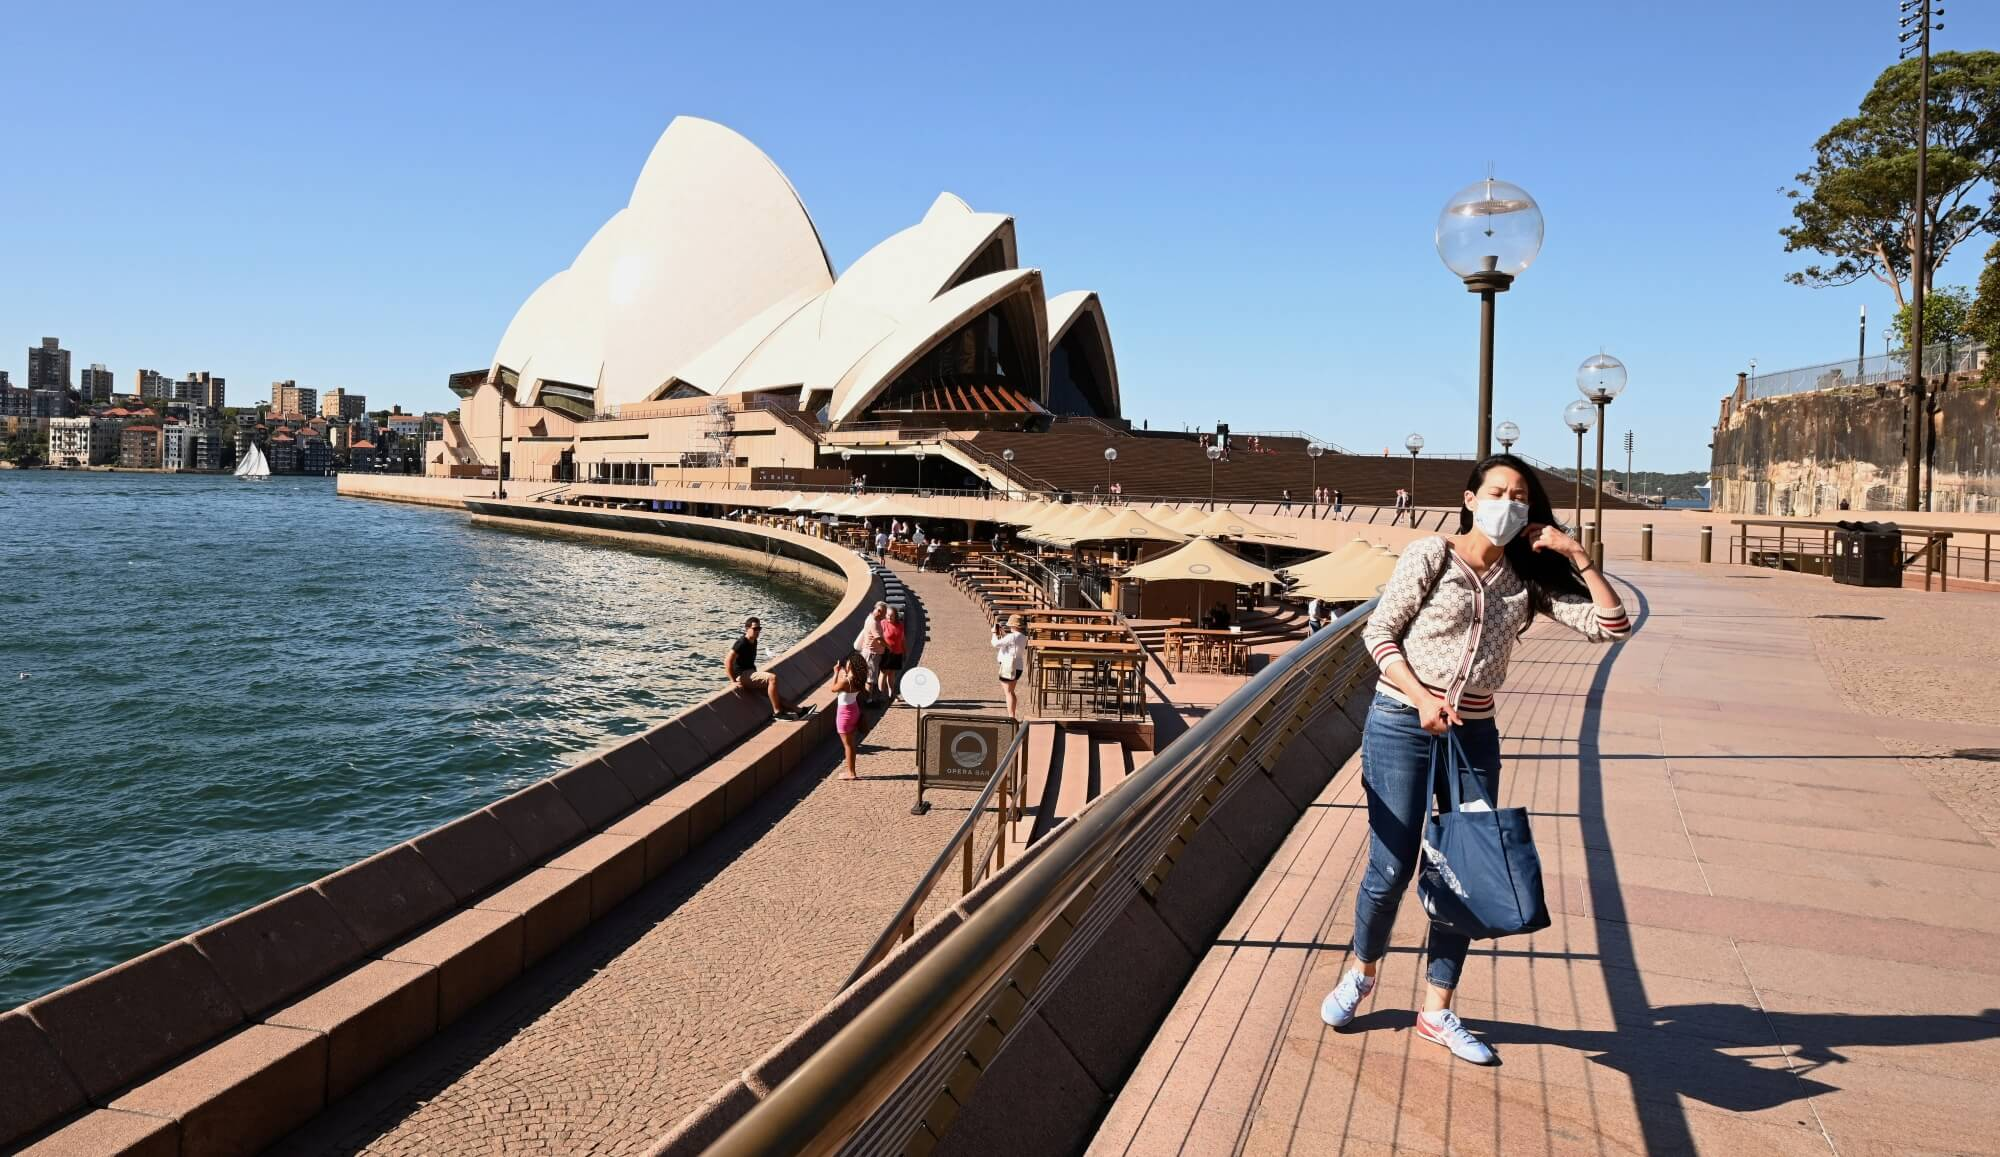 Australia's international borders: What does the future hold for students?